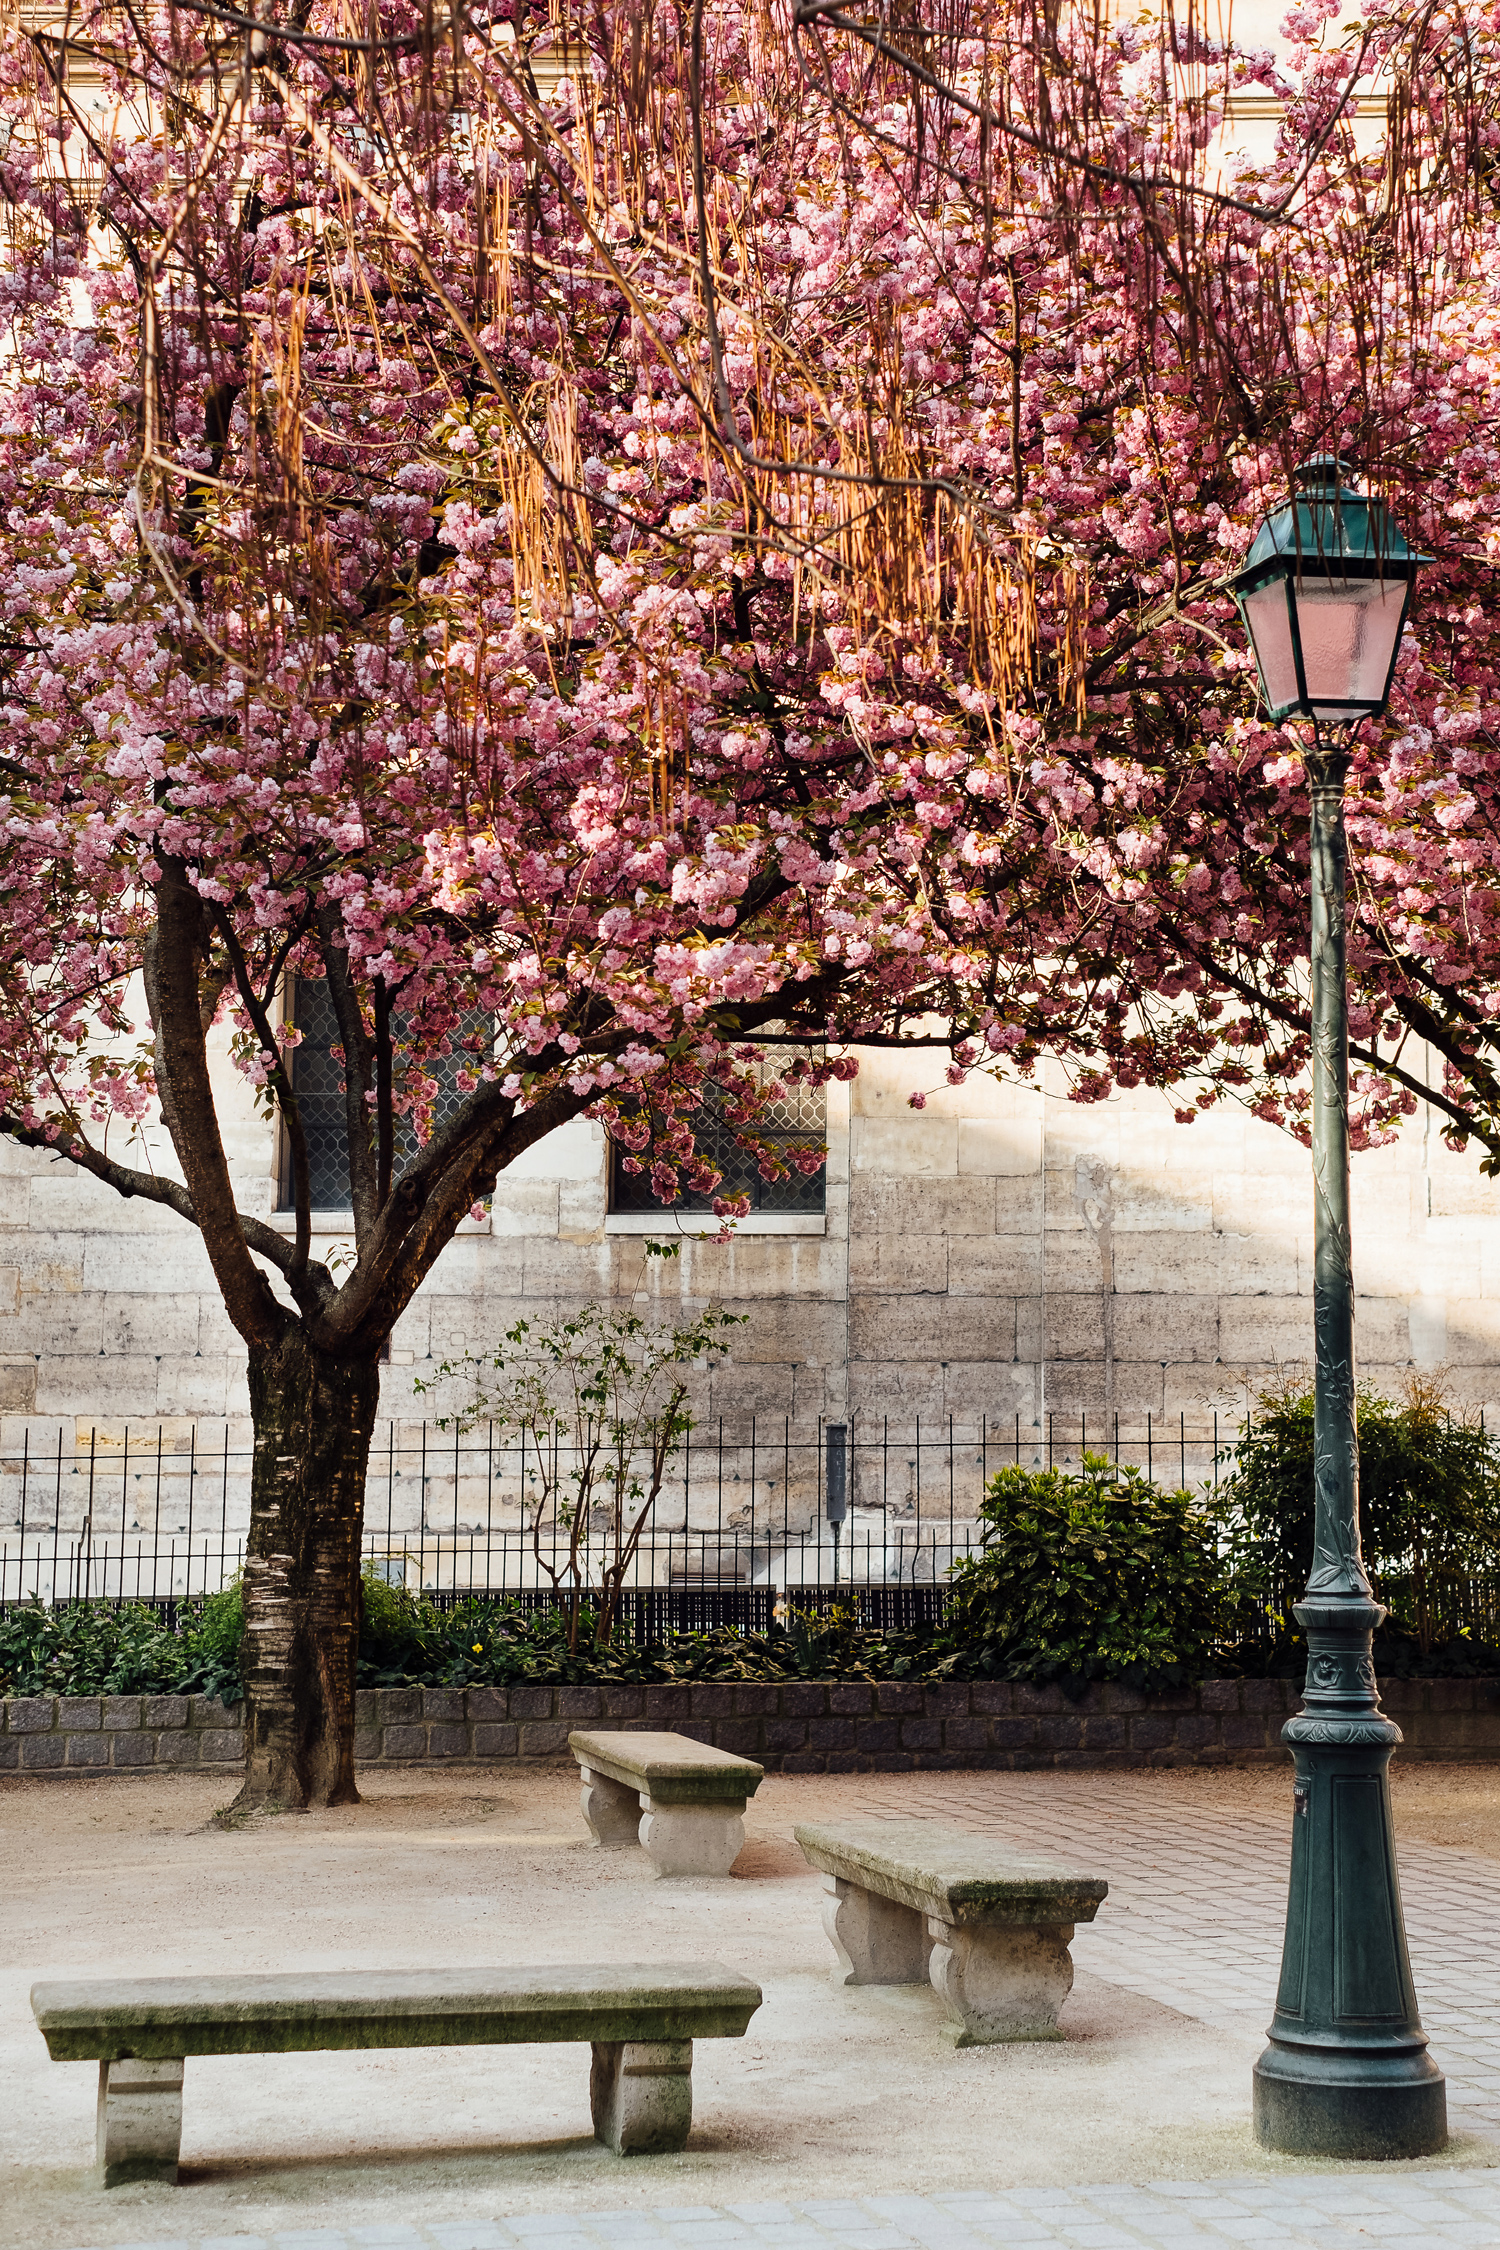 004-katie-mitchell-paris-photographer-springtime-cherry-blossom-magnolia-season-in-paris.jpg